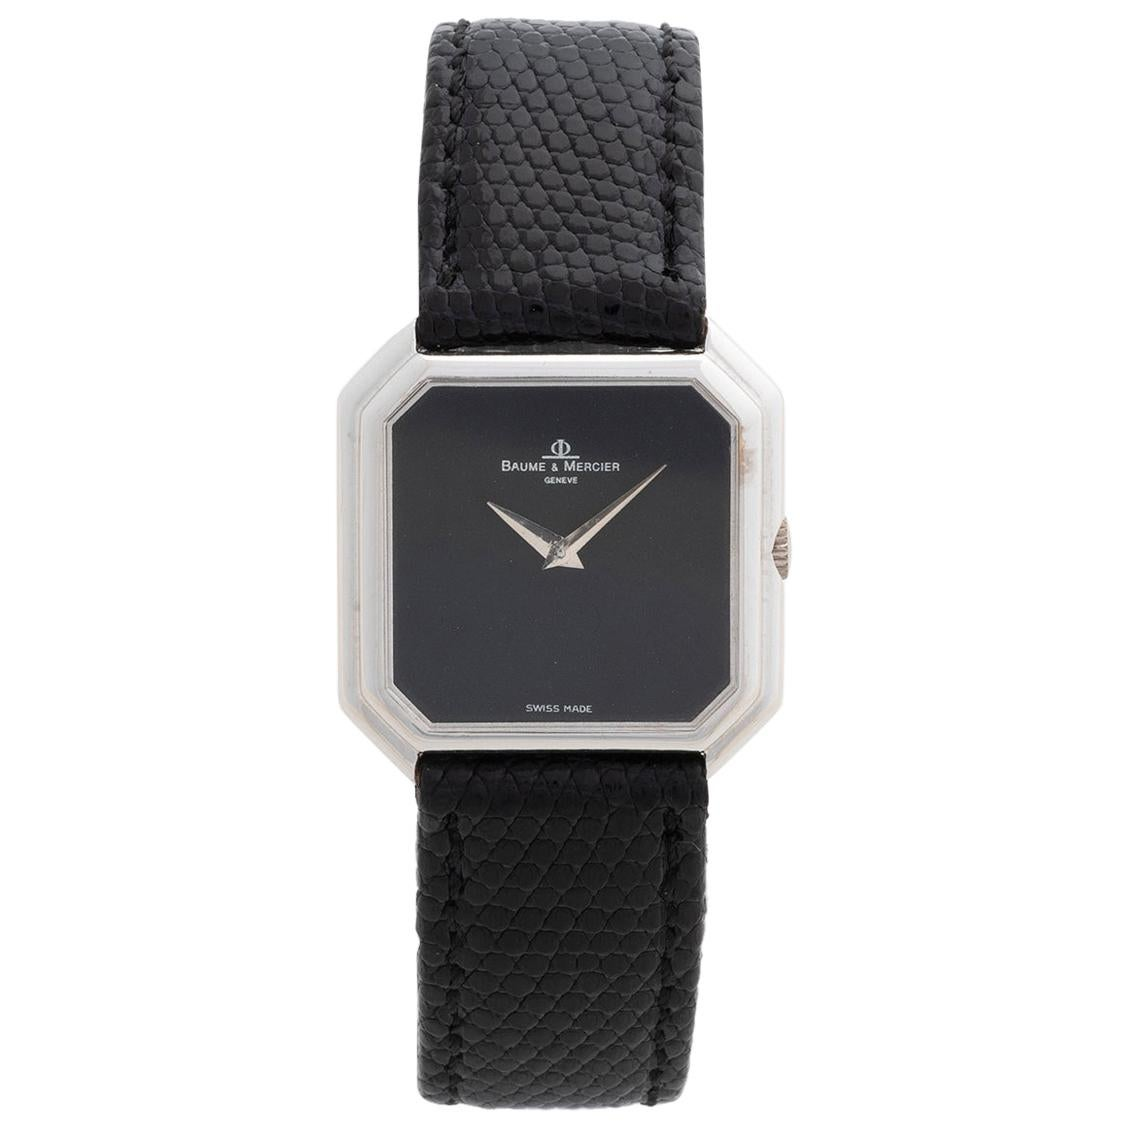 Vintage Baume & Mercier Dress Watch, Black Onyx Dial, Outstanding Condition